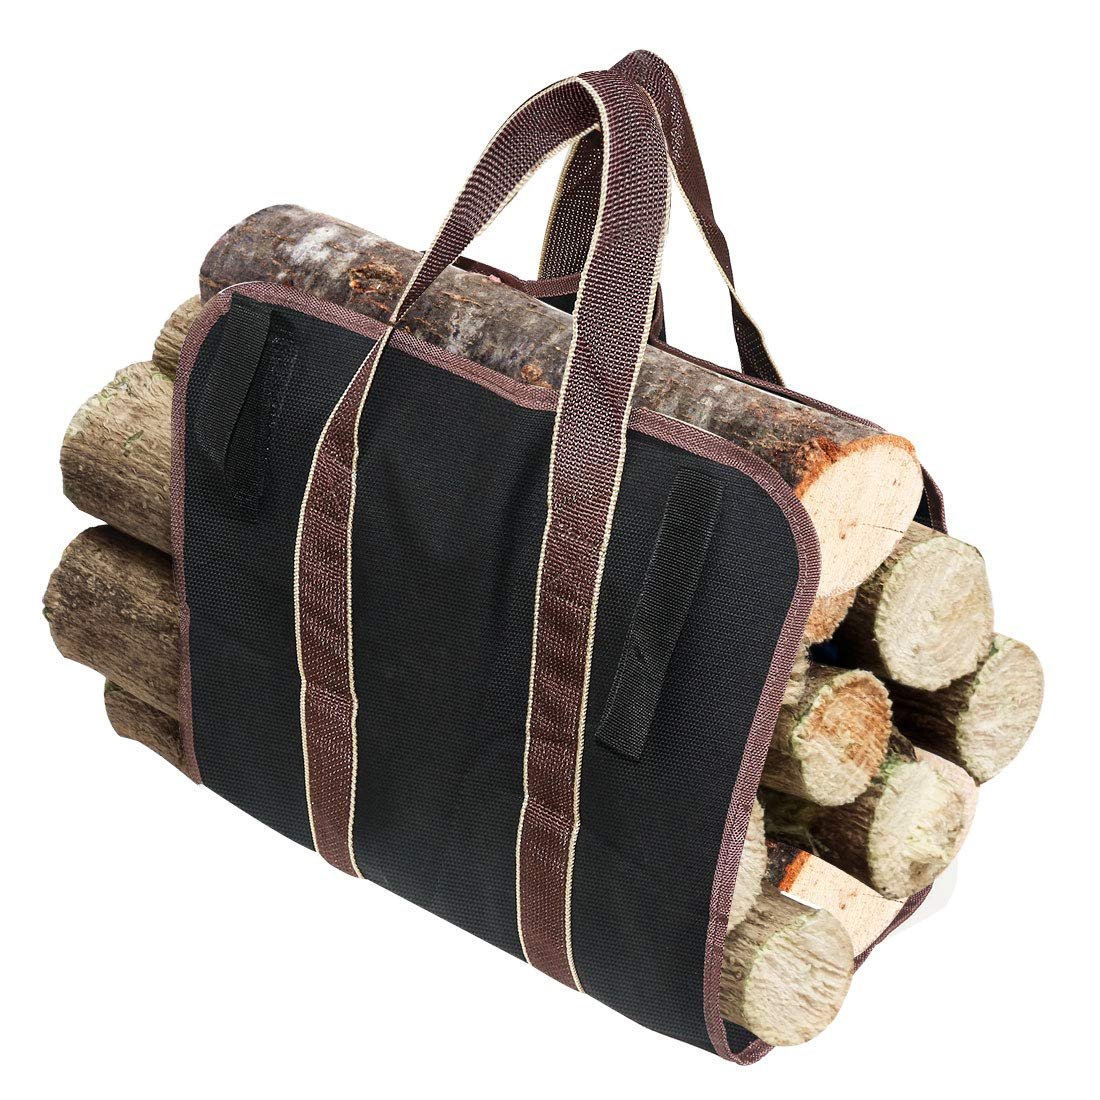 LingsFire Log Carrier Firewood Tote Wood Carrying Bag Fireplace 16oz Canvas Wood Tote Bag Extra Large Firewood Holder with Handles Fireplace Wood Stove Accessories for Camping Beaches (Black) by LingsFire (Image #1)